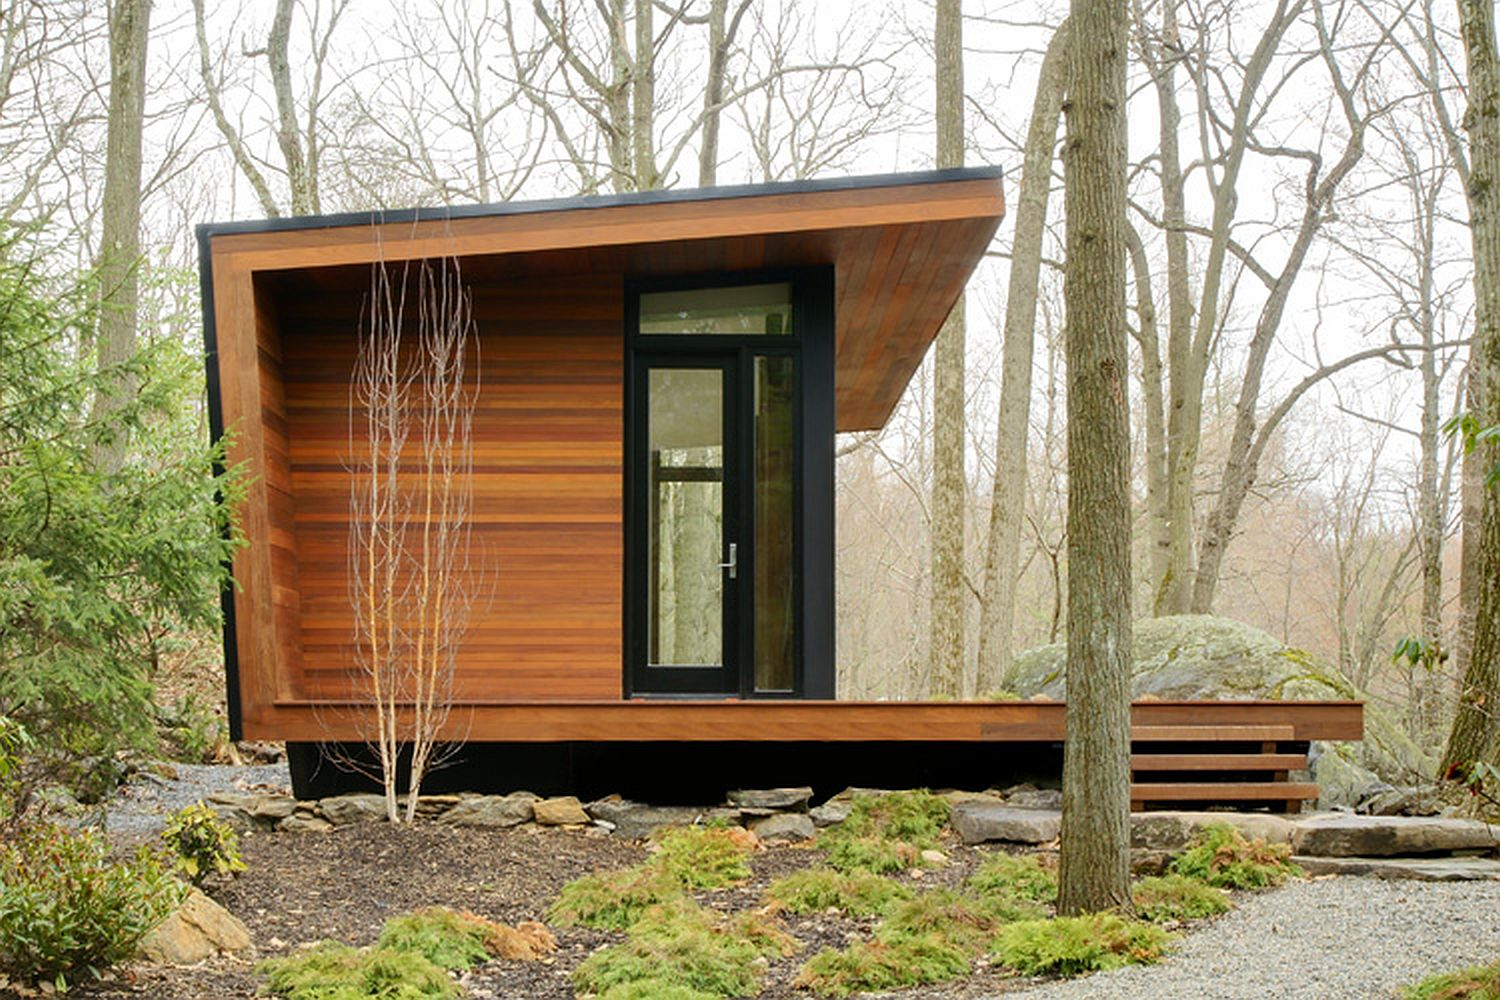 Gallery a modern studio retreat in the woods workshop for The new small house